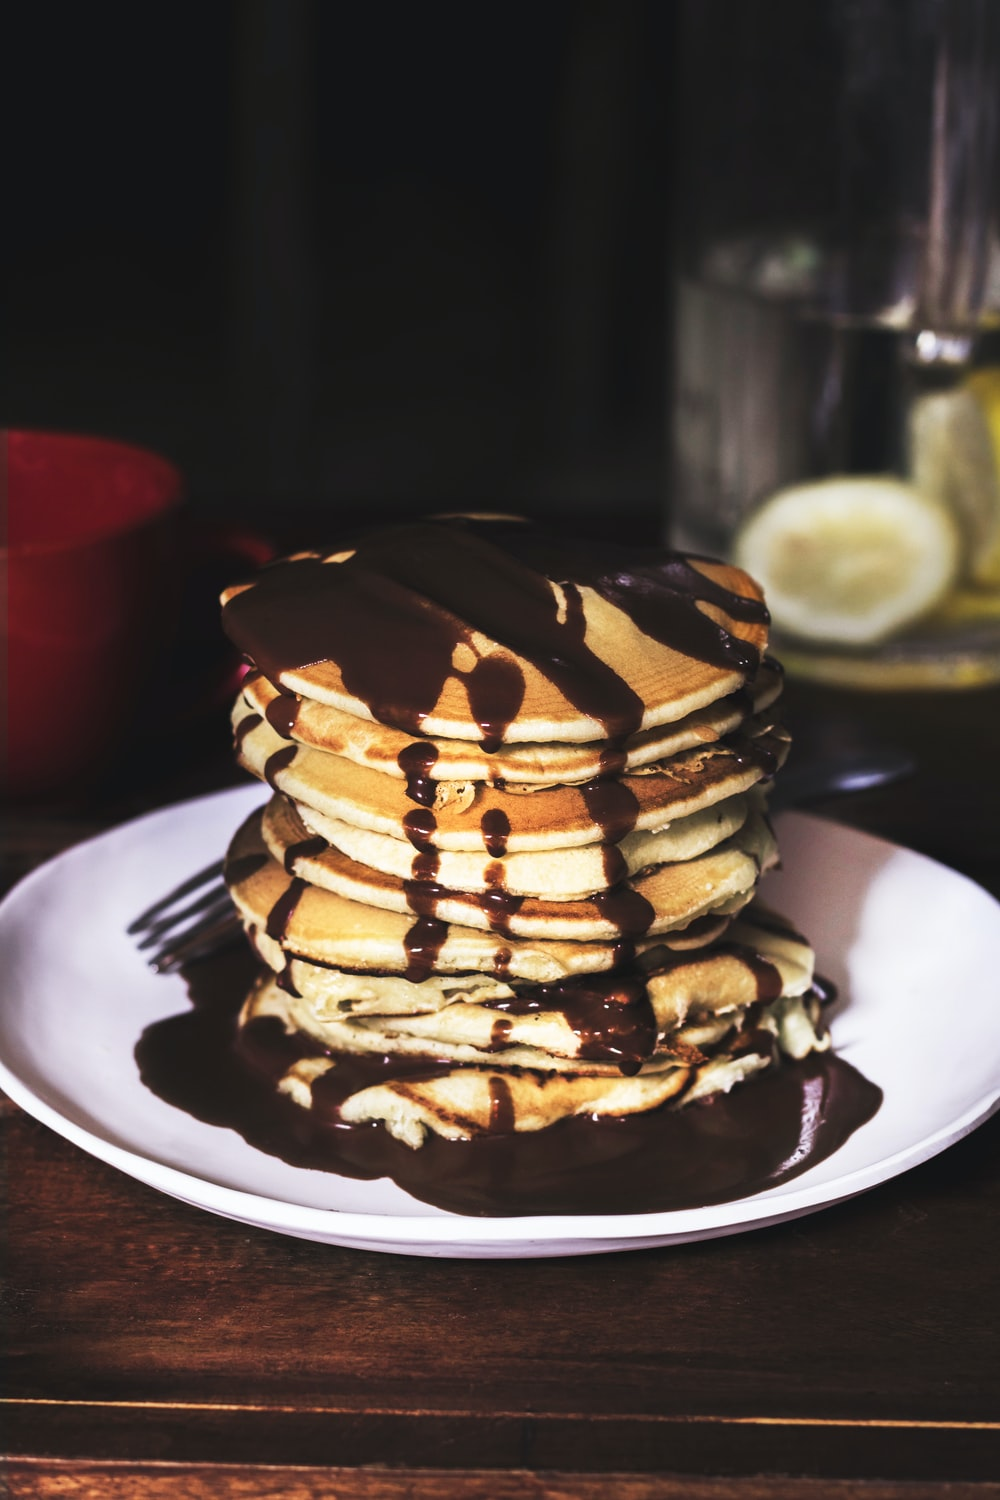 pancake on round plate with chocolate syrup